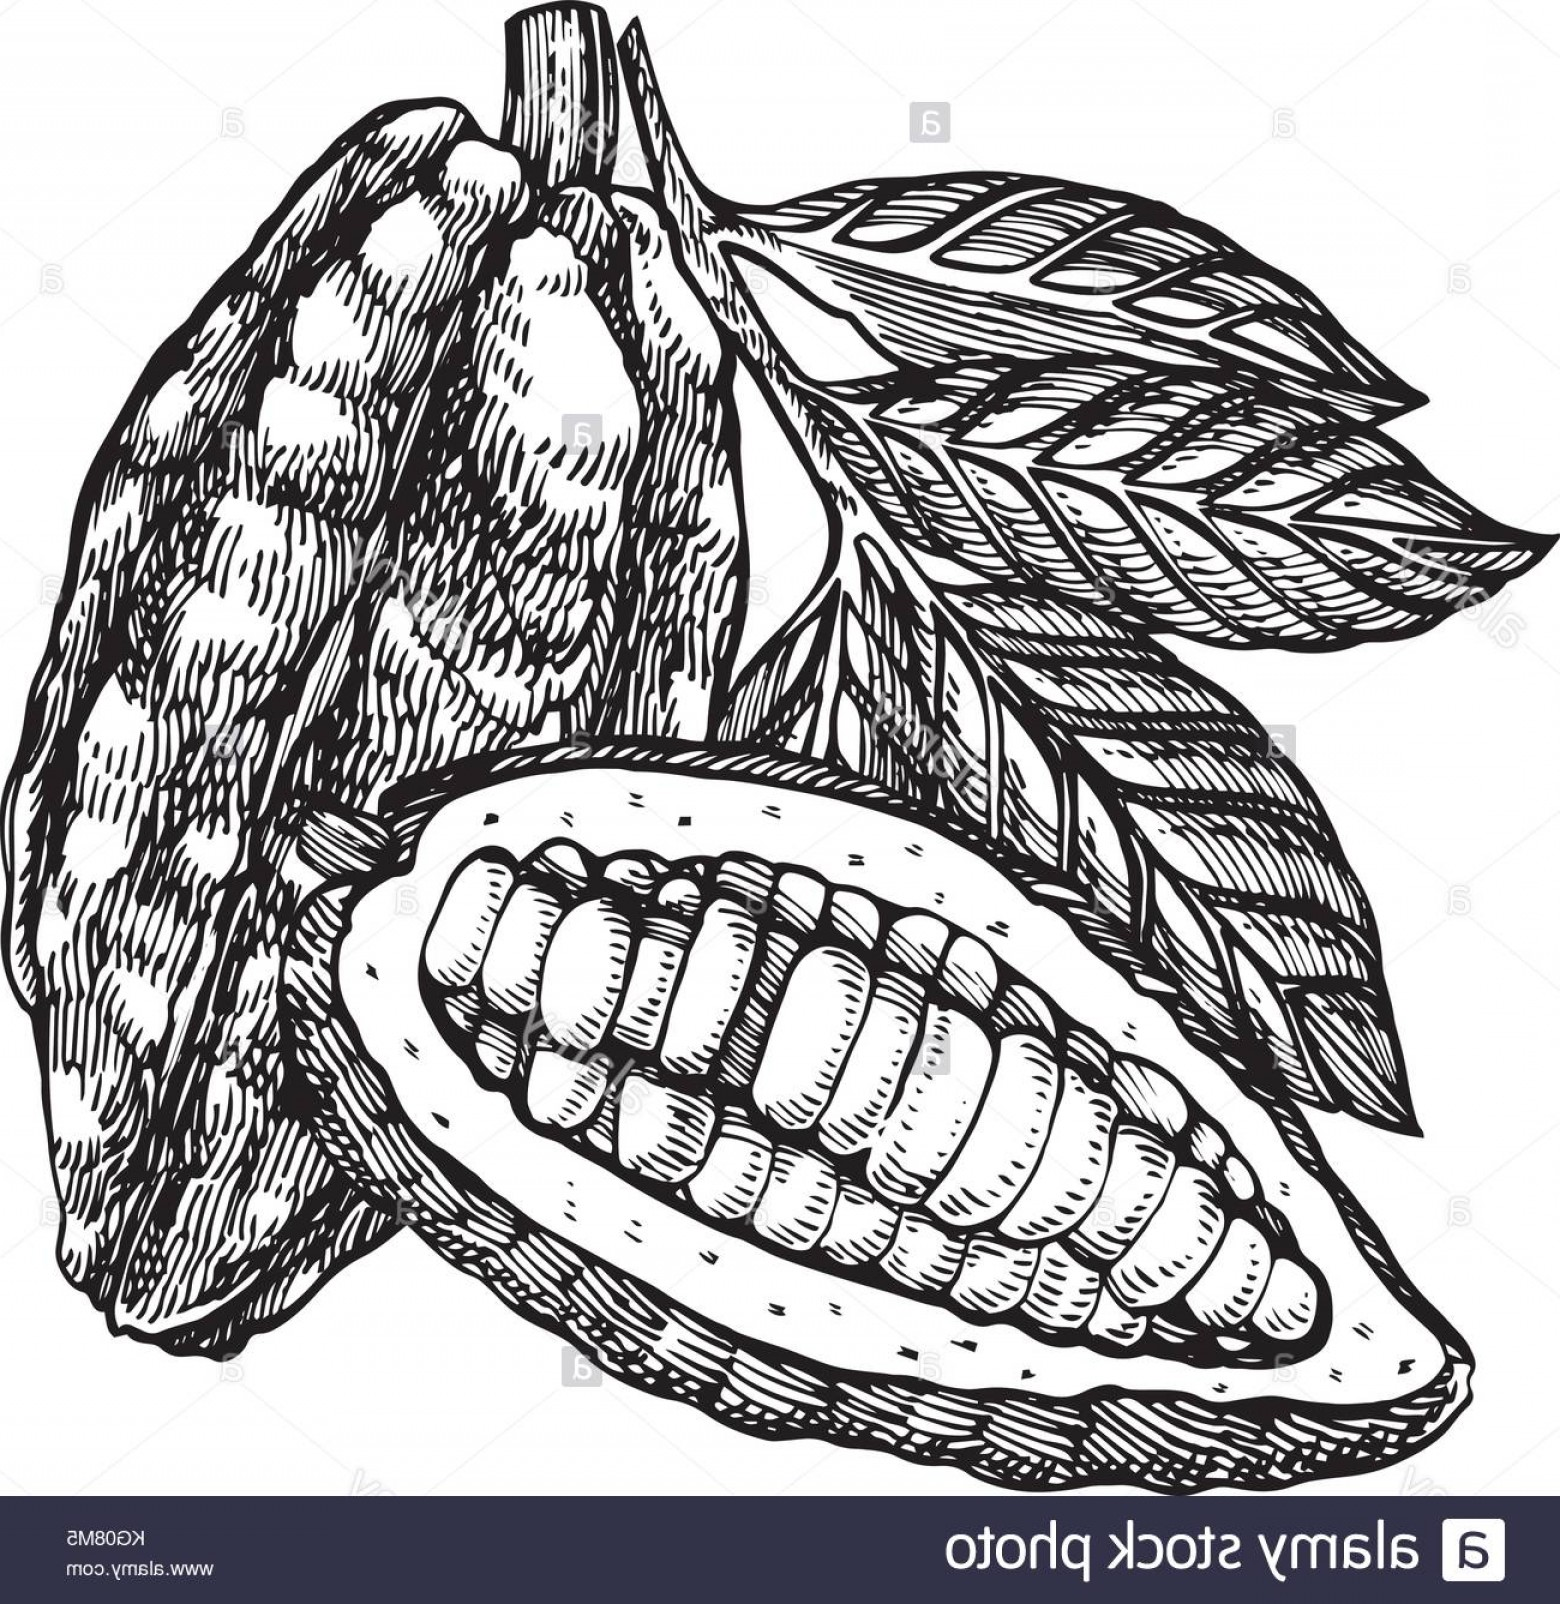 Chocolate Vector Plant: Stock Image Chocolate Cocoa Beans Vector Illustration Engraved Style Illustration